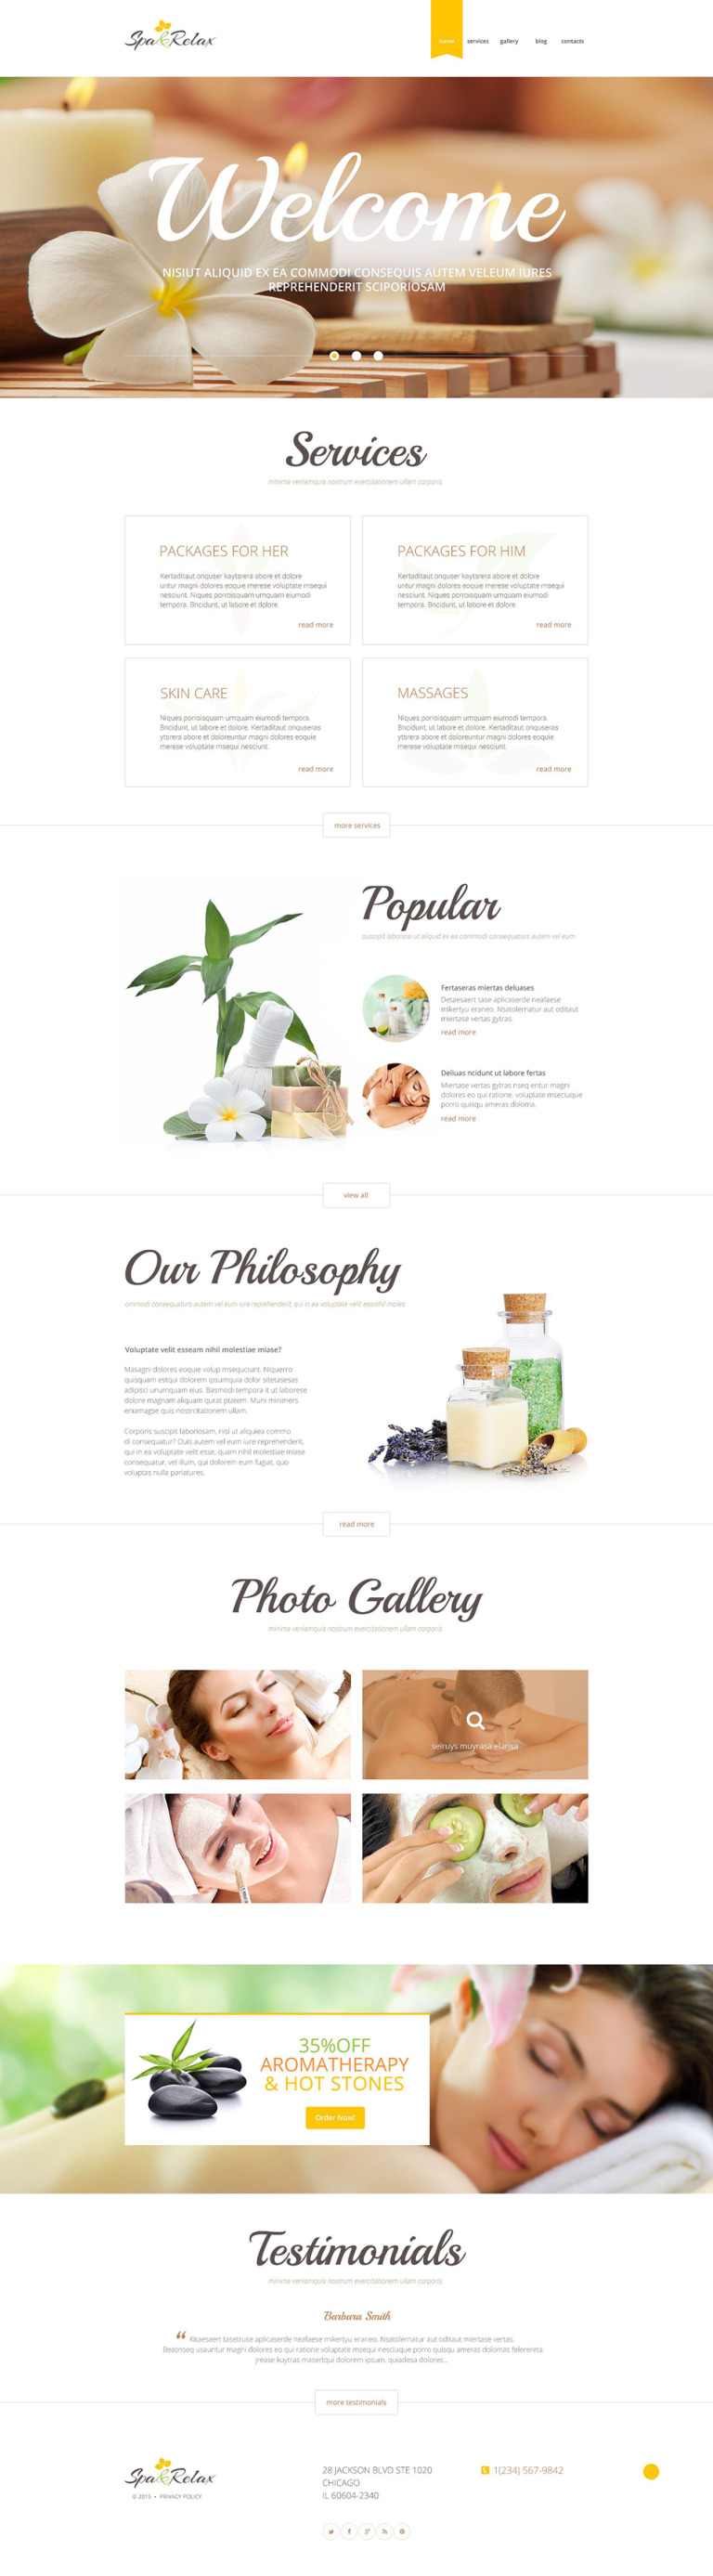 Spa Accessories Responsive WordPress Theme New Screenshots BIG